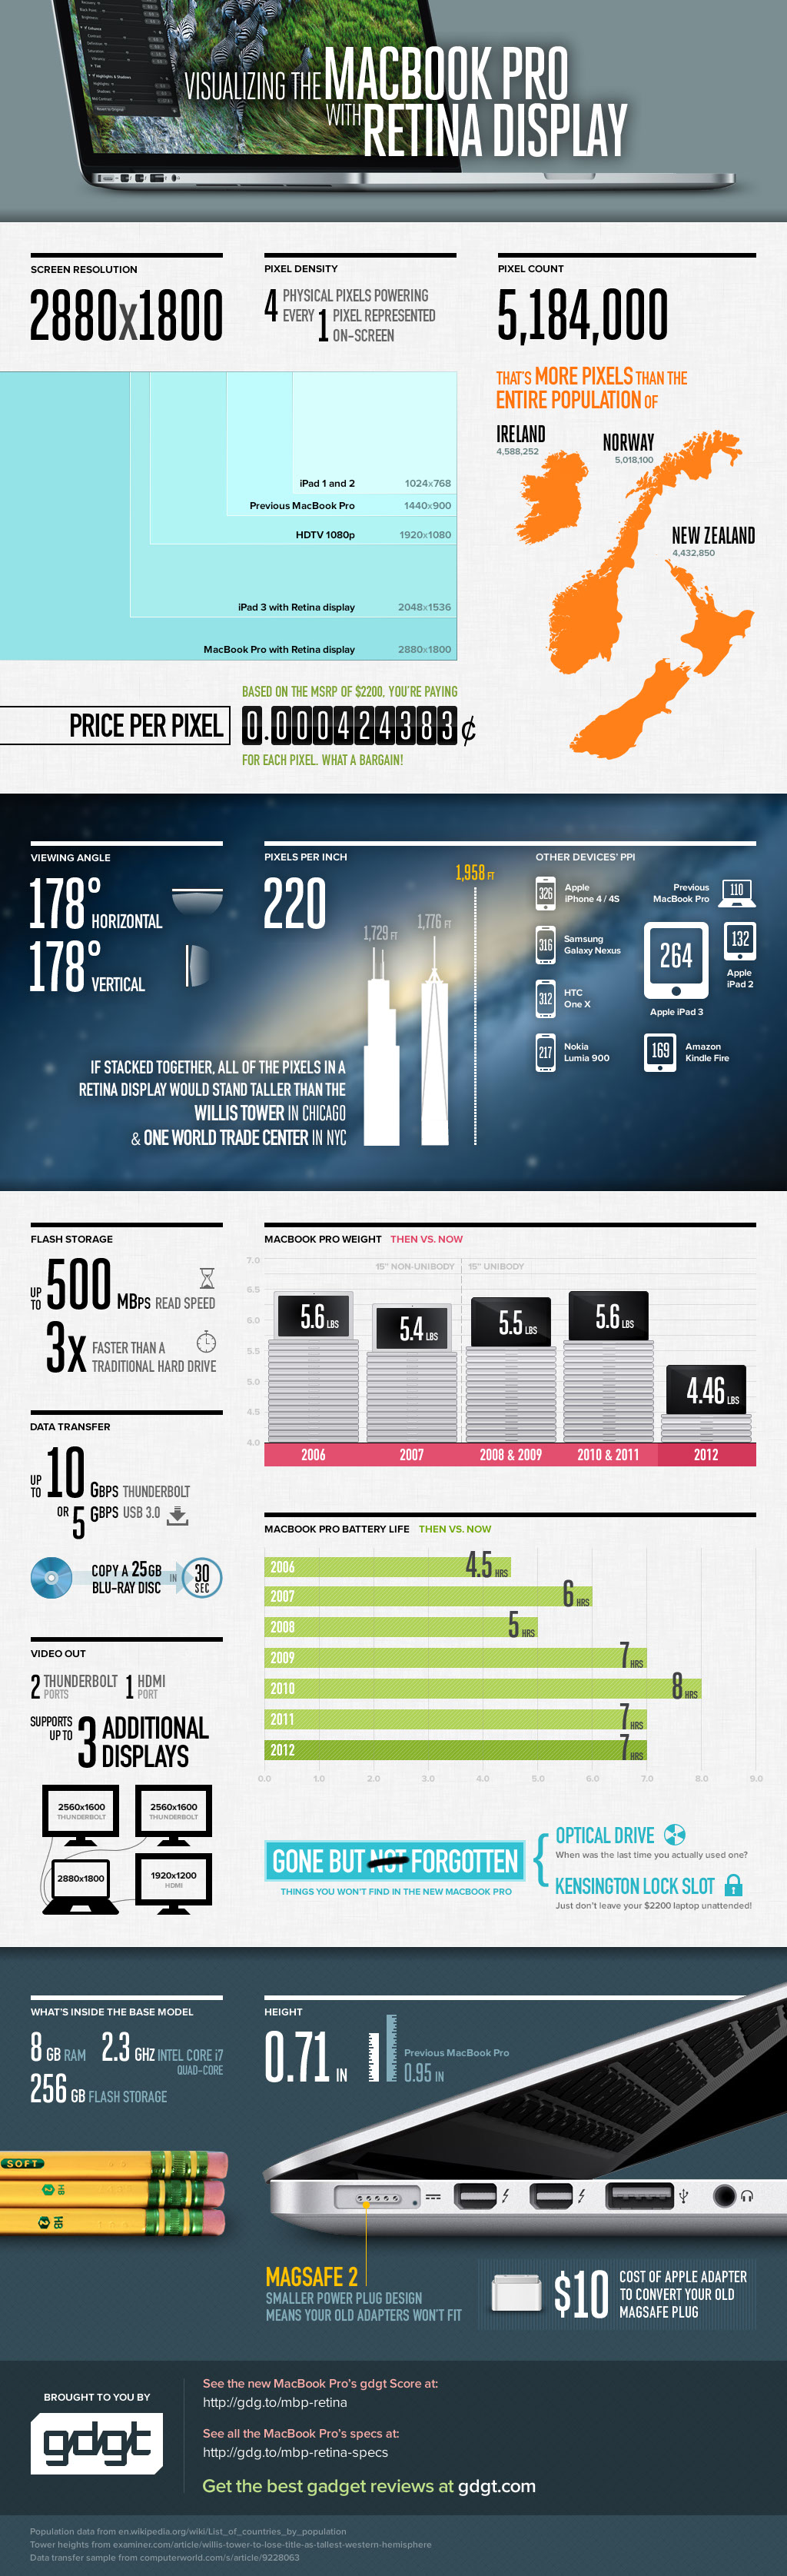 Macbook-Pro-Retina-Display-infographic